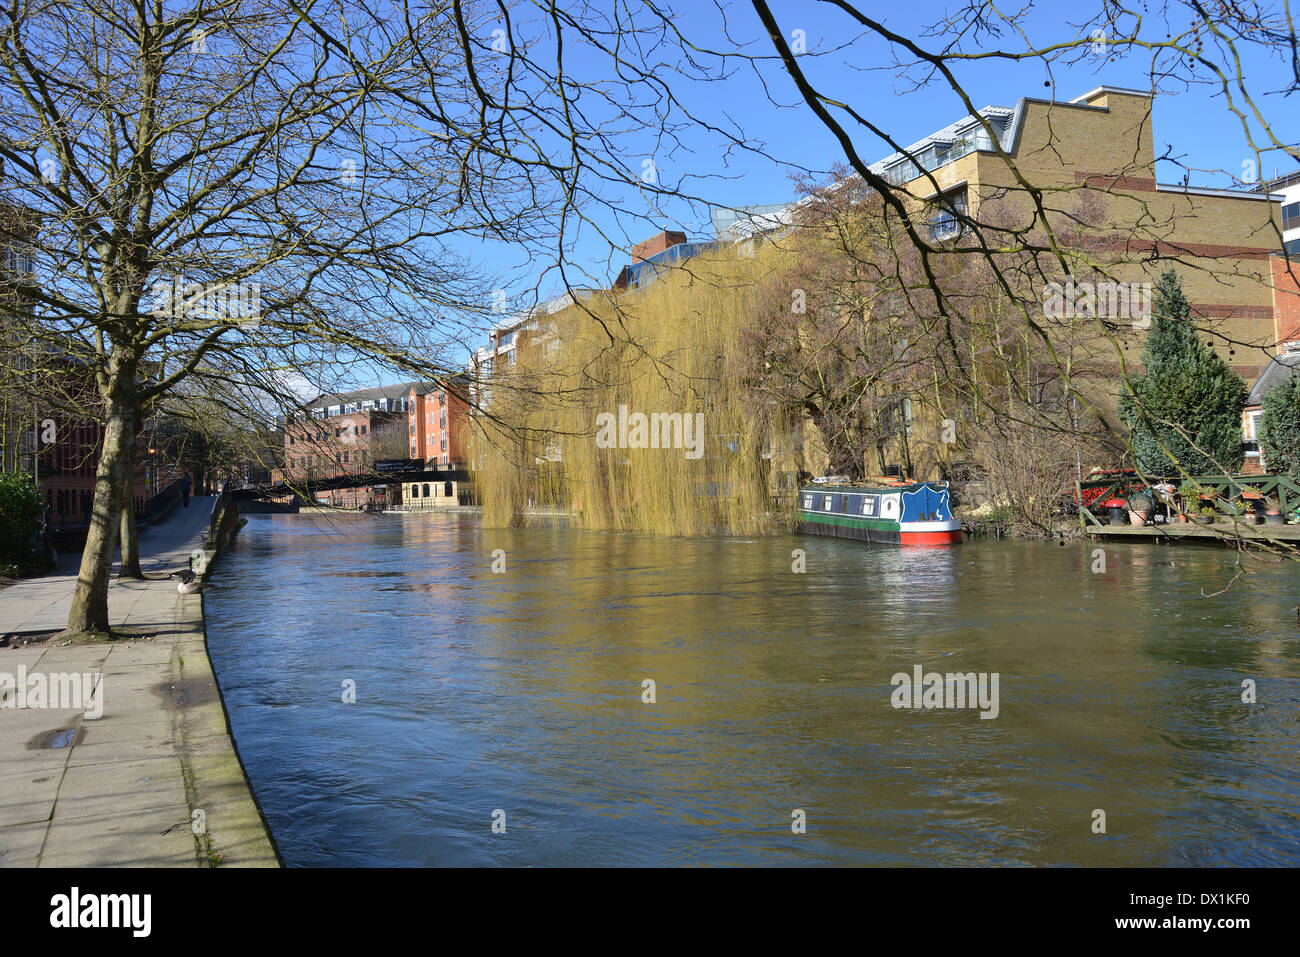 The River Kennet flowing through Reading, Berkshire -1 Stock Photo